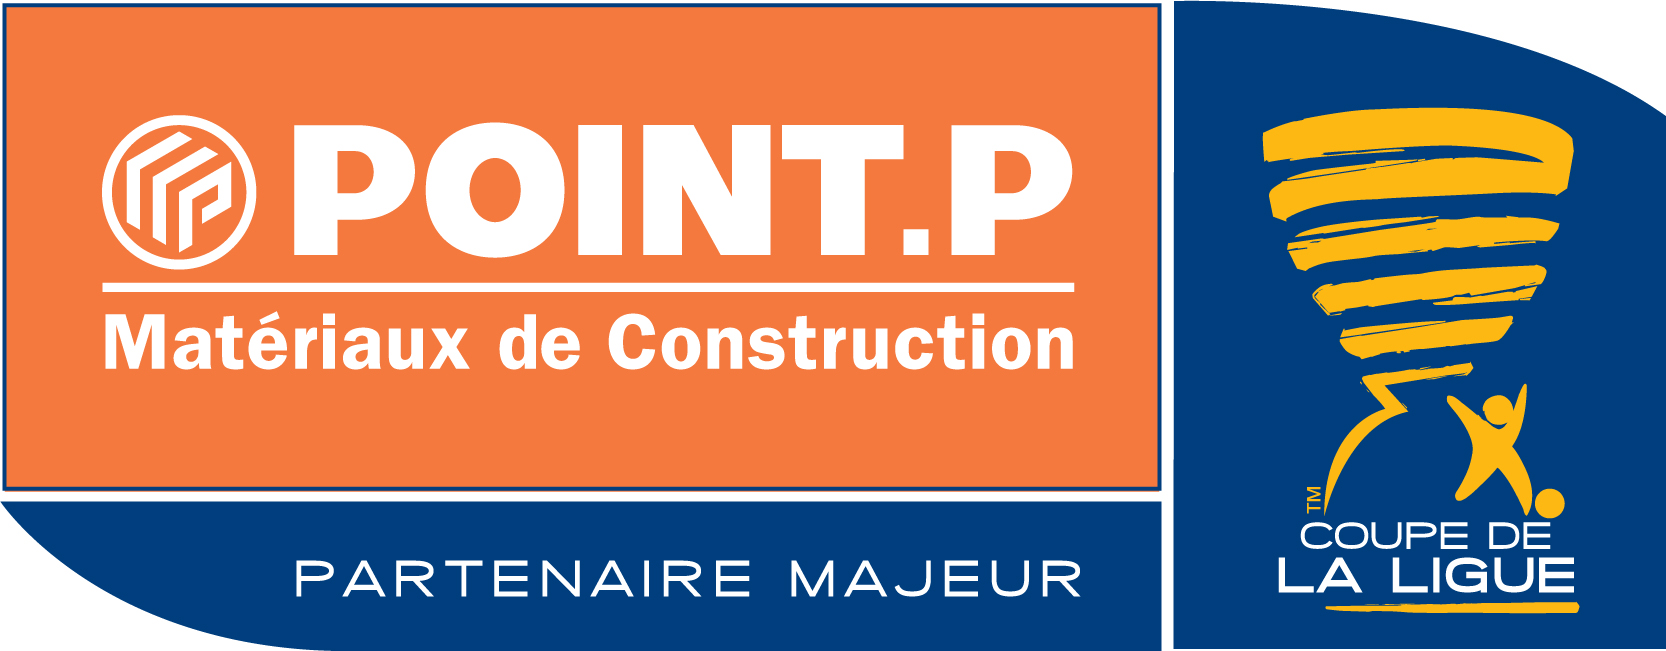 Point p reconduit son partenariat avec la coupe de la - Point p aubagne ...